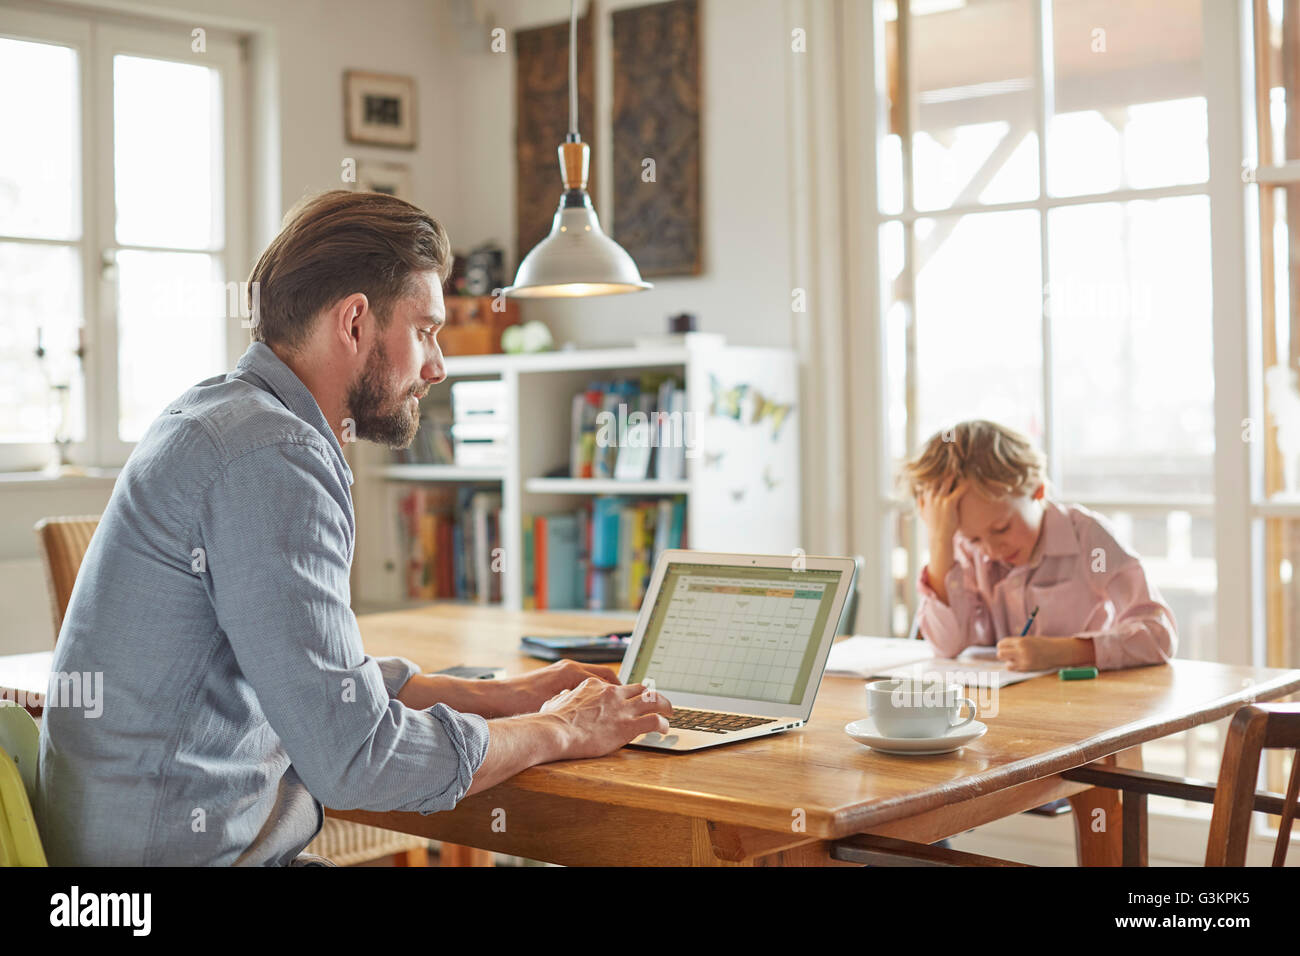 Father and son working in home office - Stock Image